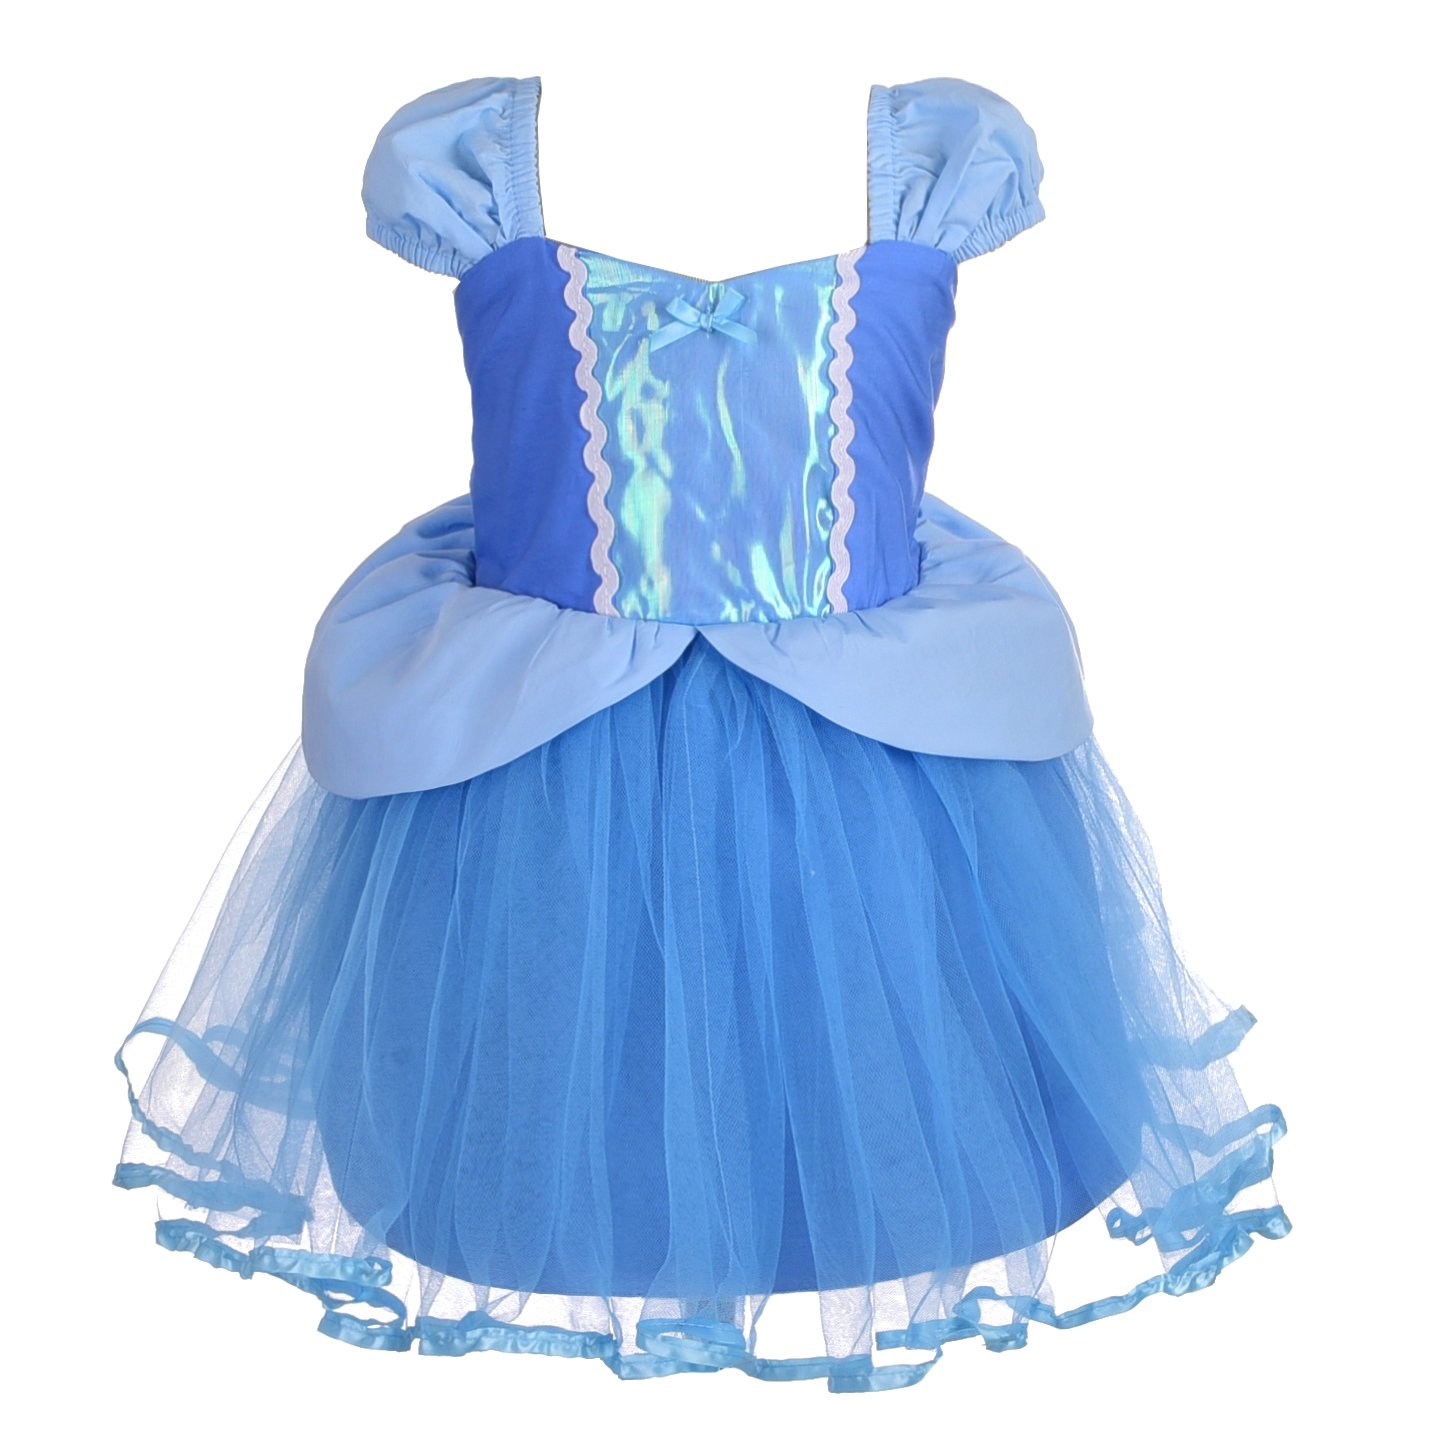 Dressy Daisy Girls Princess Cinderella Dress Costumes for Toddler Girls Halloween Fancy Party Dress Size 2T